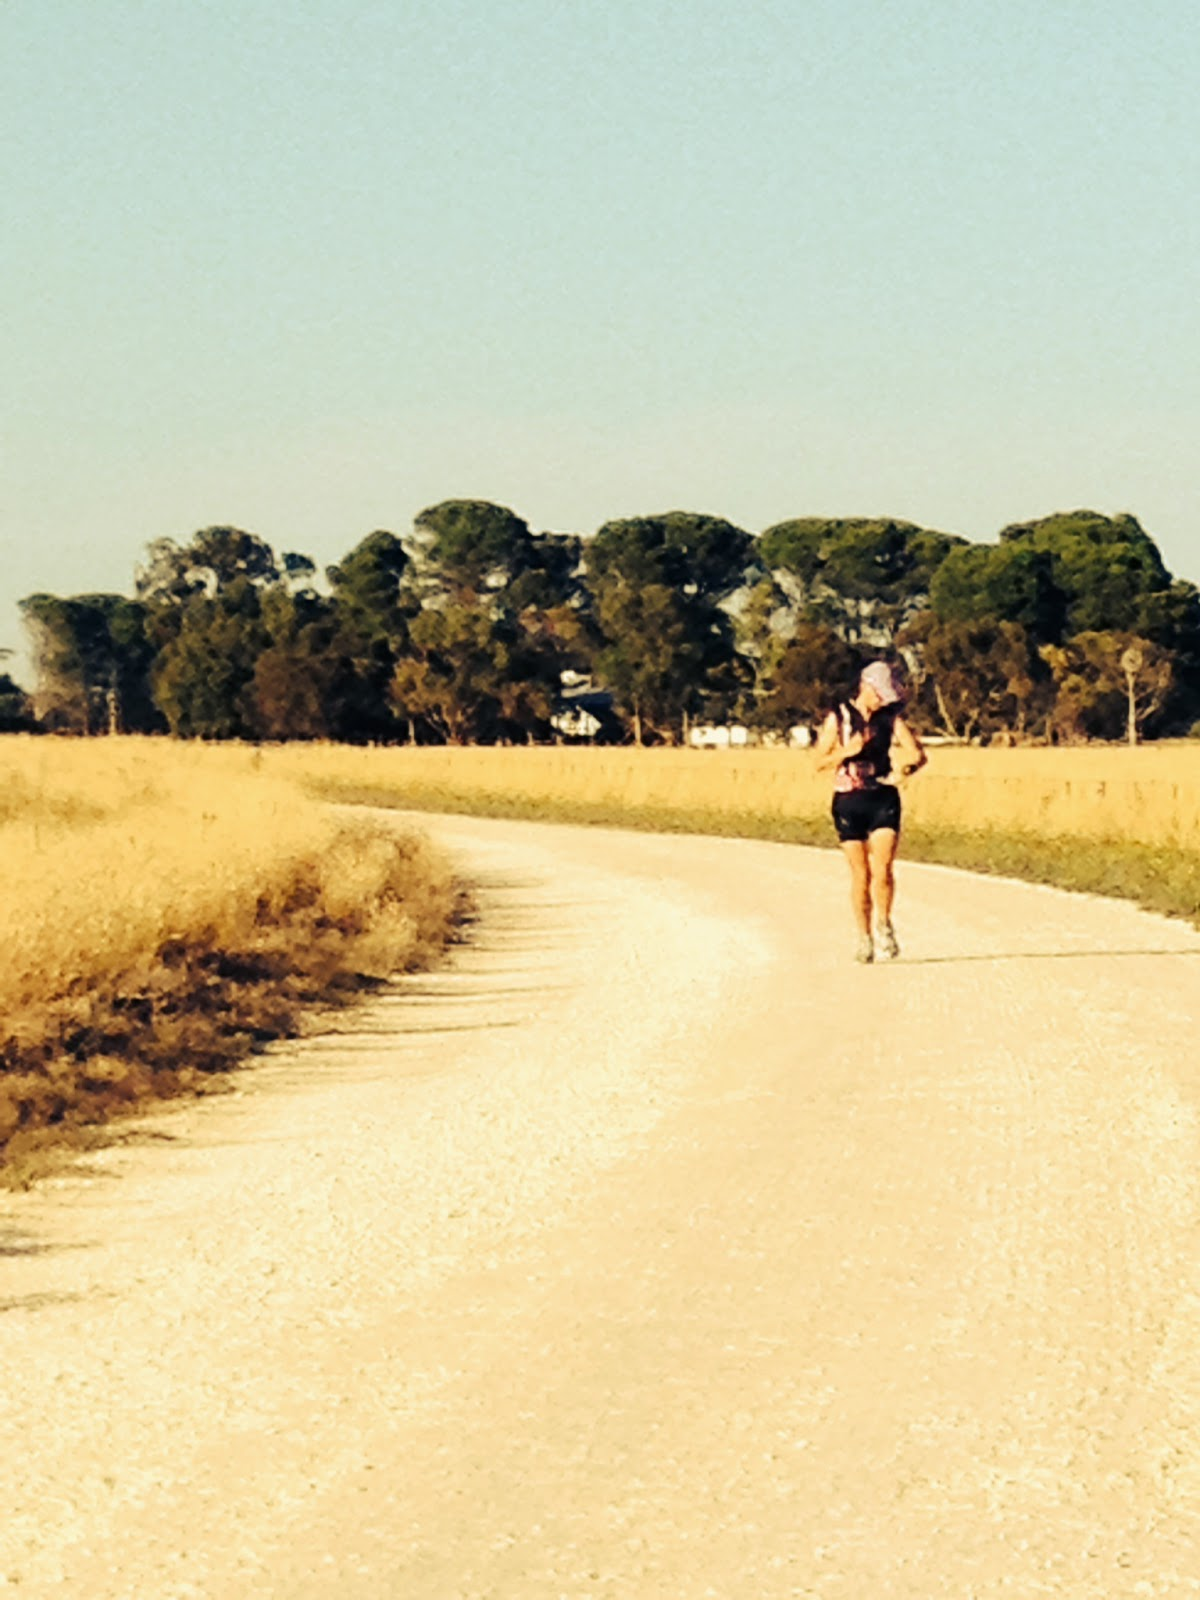 Running on a country road